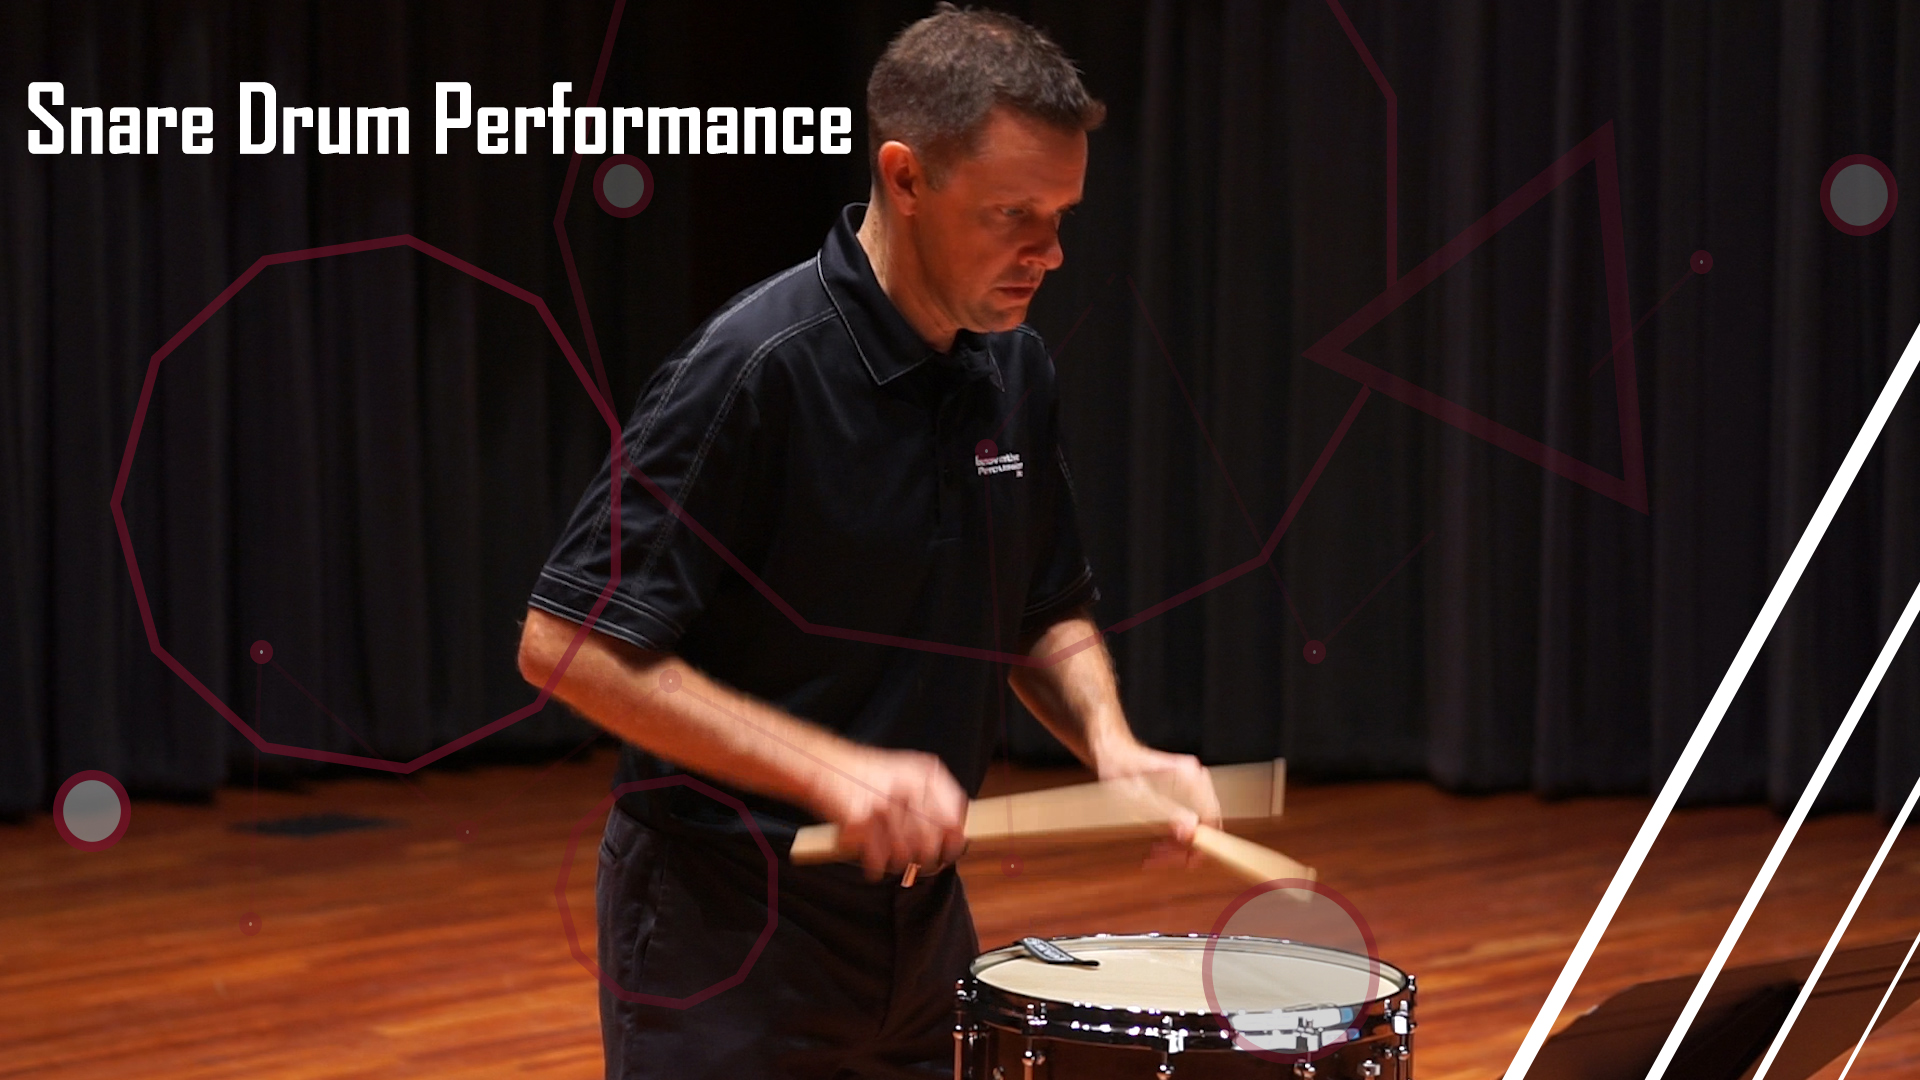 Snare Drum Performance